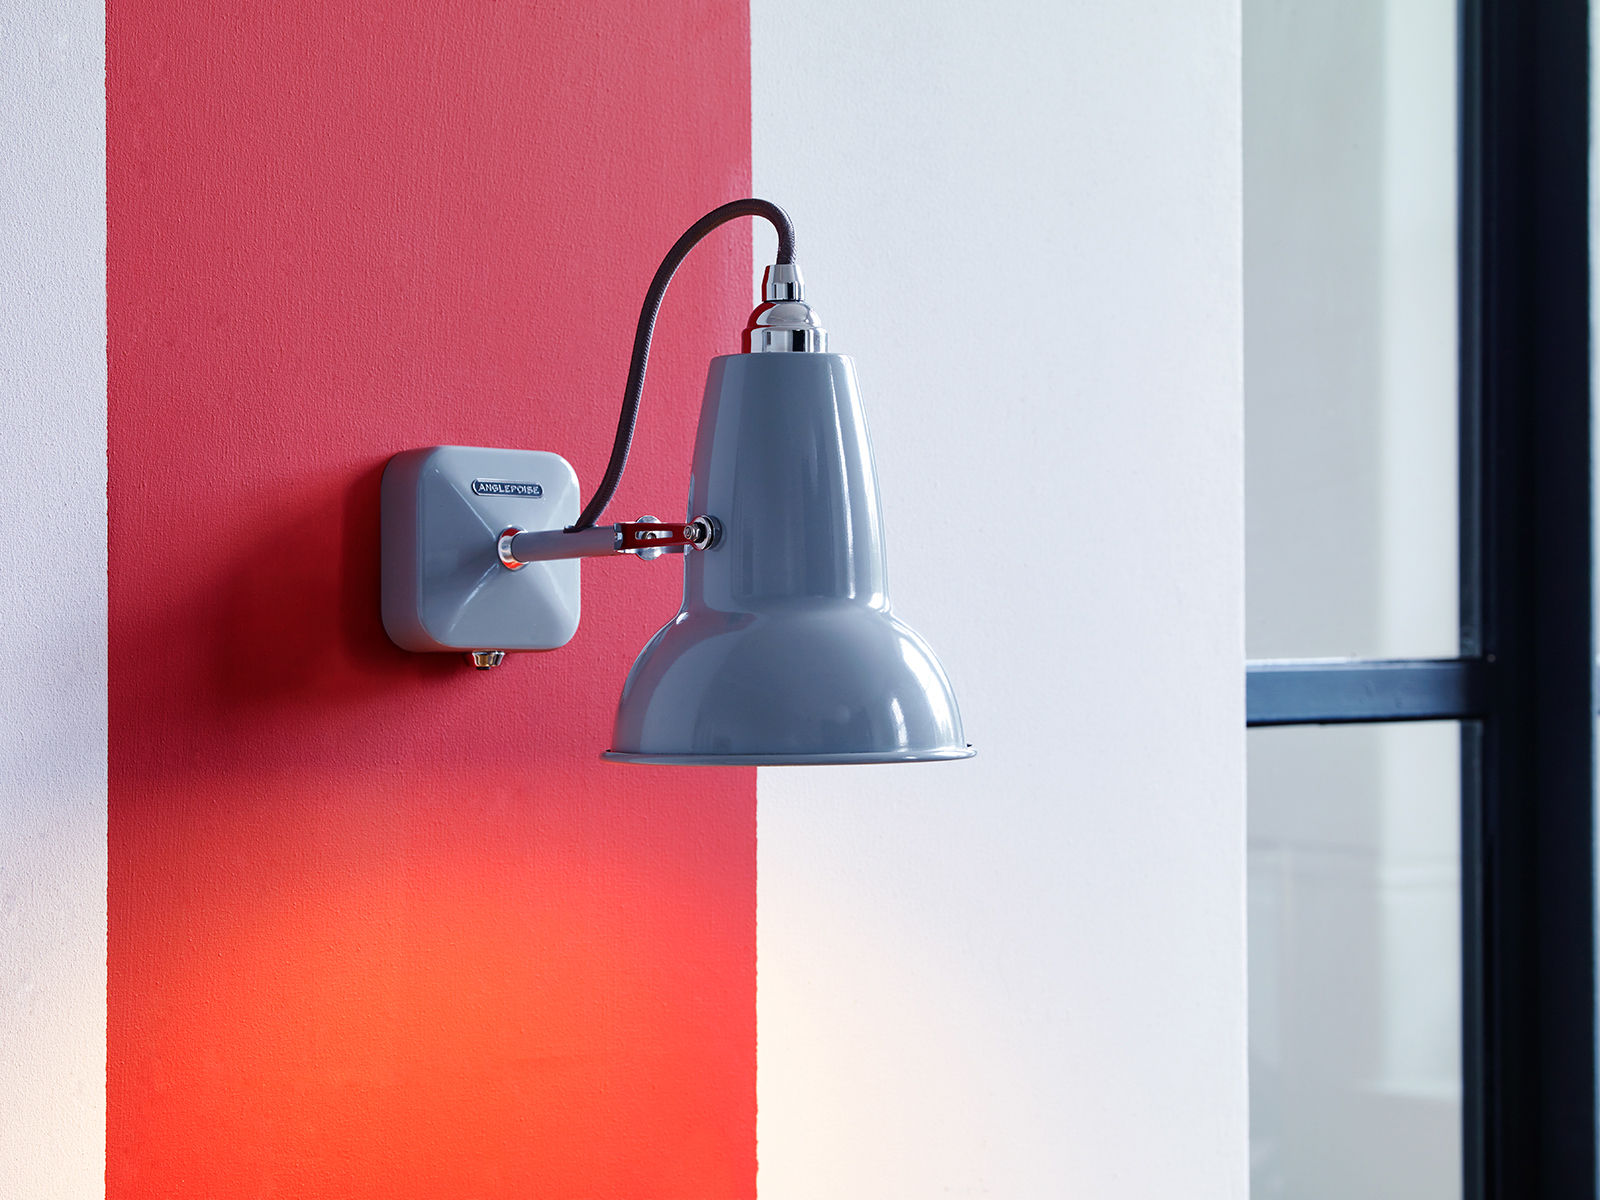 Original mini wall light jet black by anglepoise made in